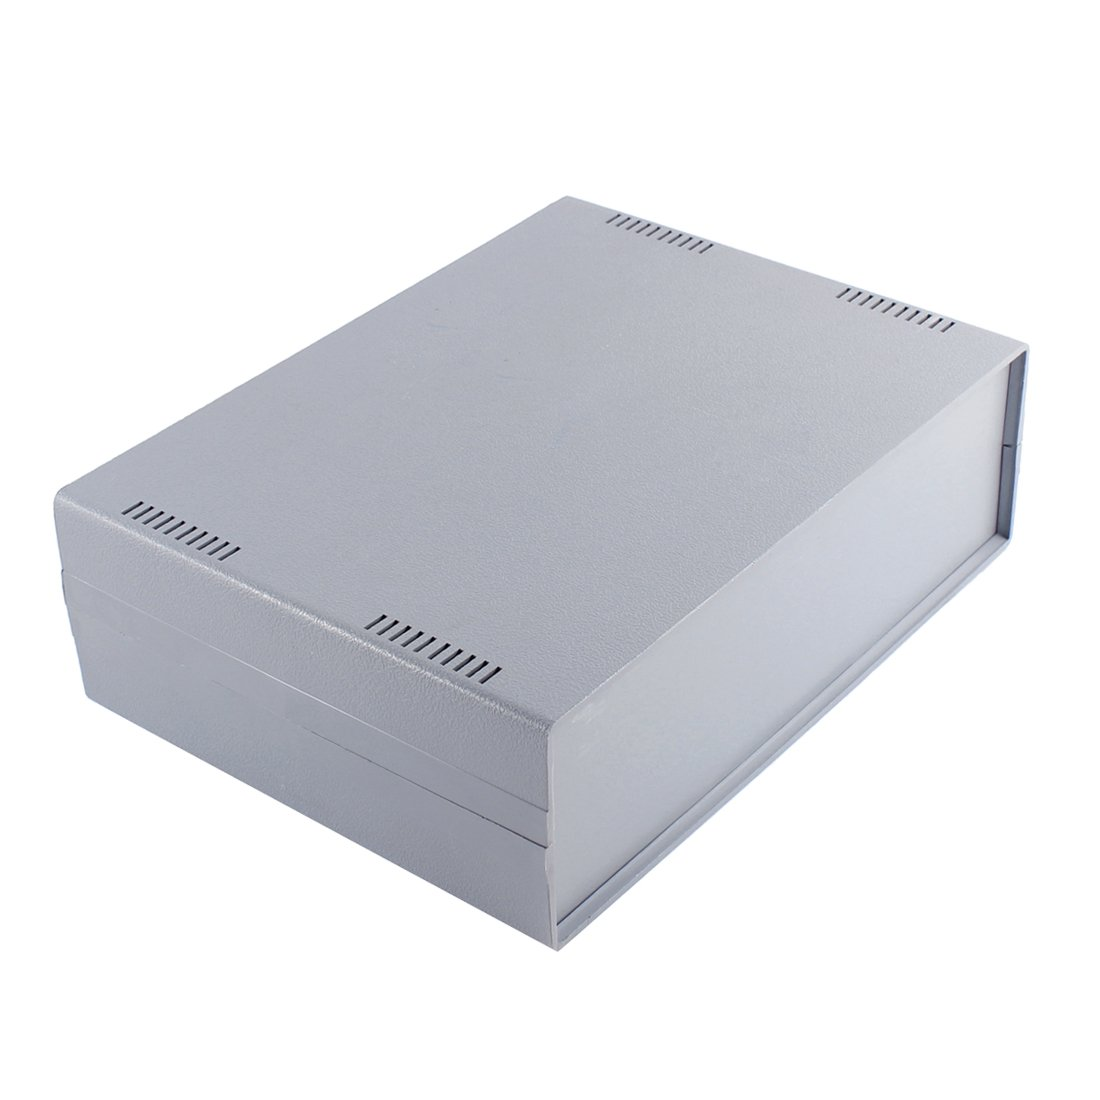 uxcell Plastic Project Box Enclosure Case Electronic DIY 250 x 190 x 80mm